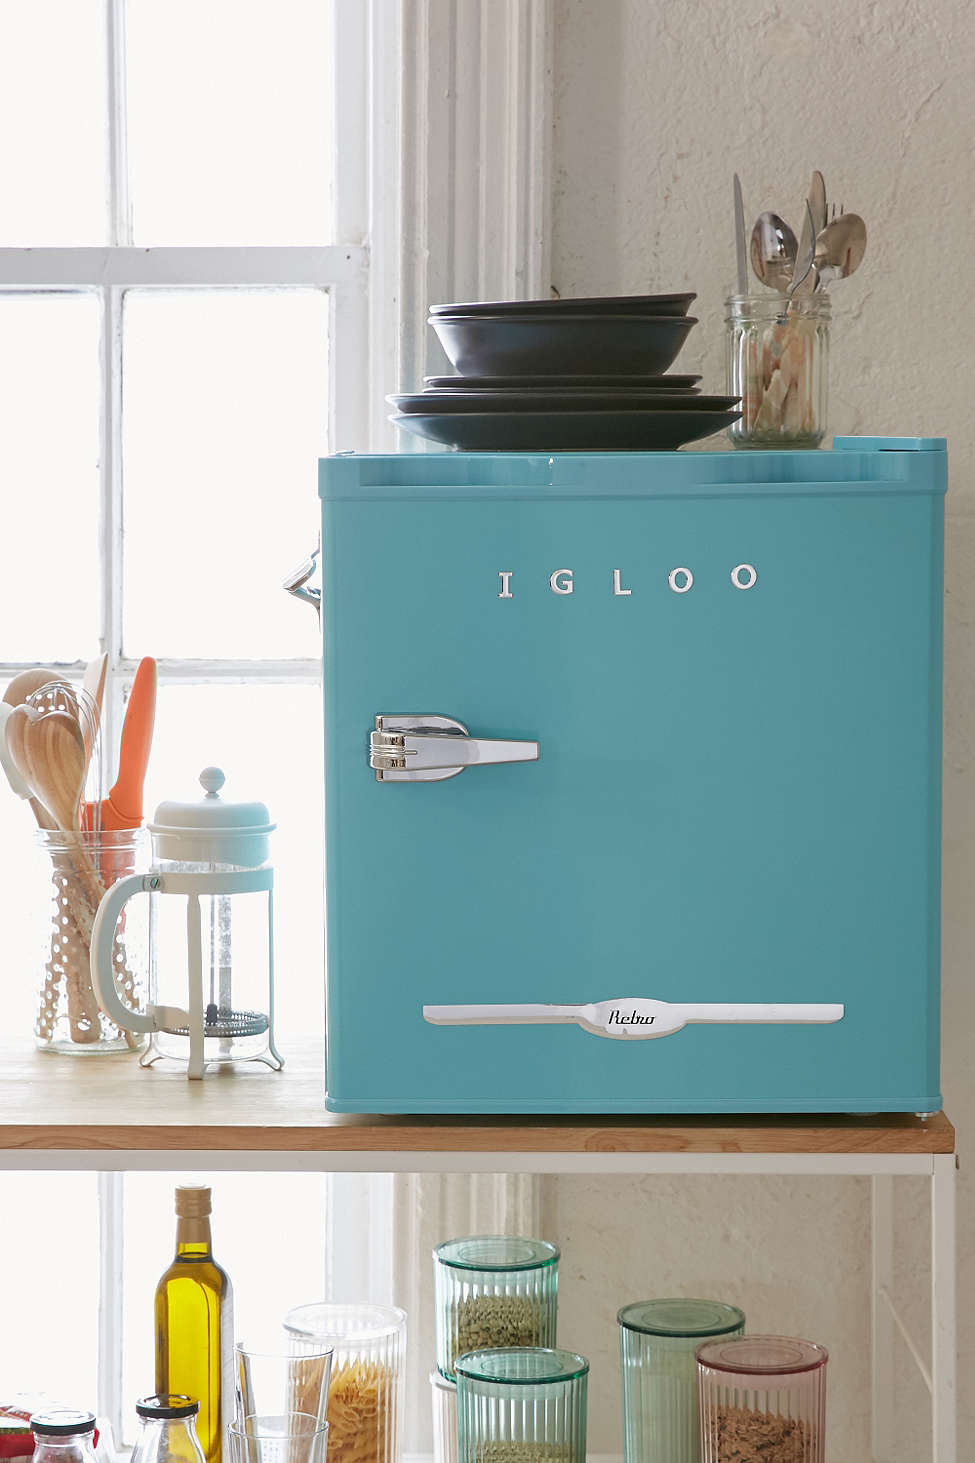 Igloo Mini Refrigerator